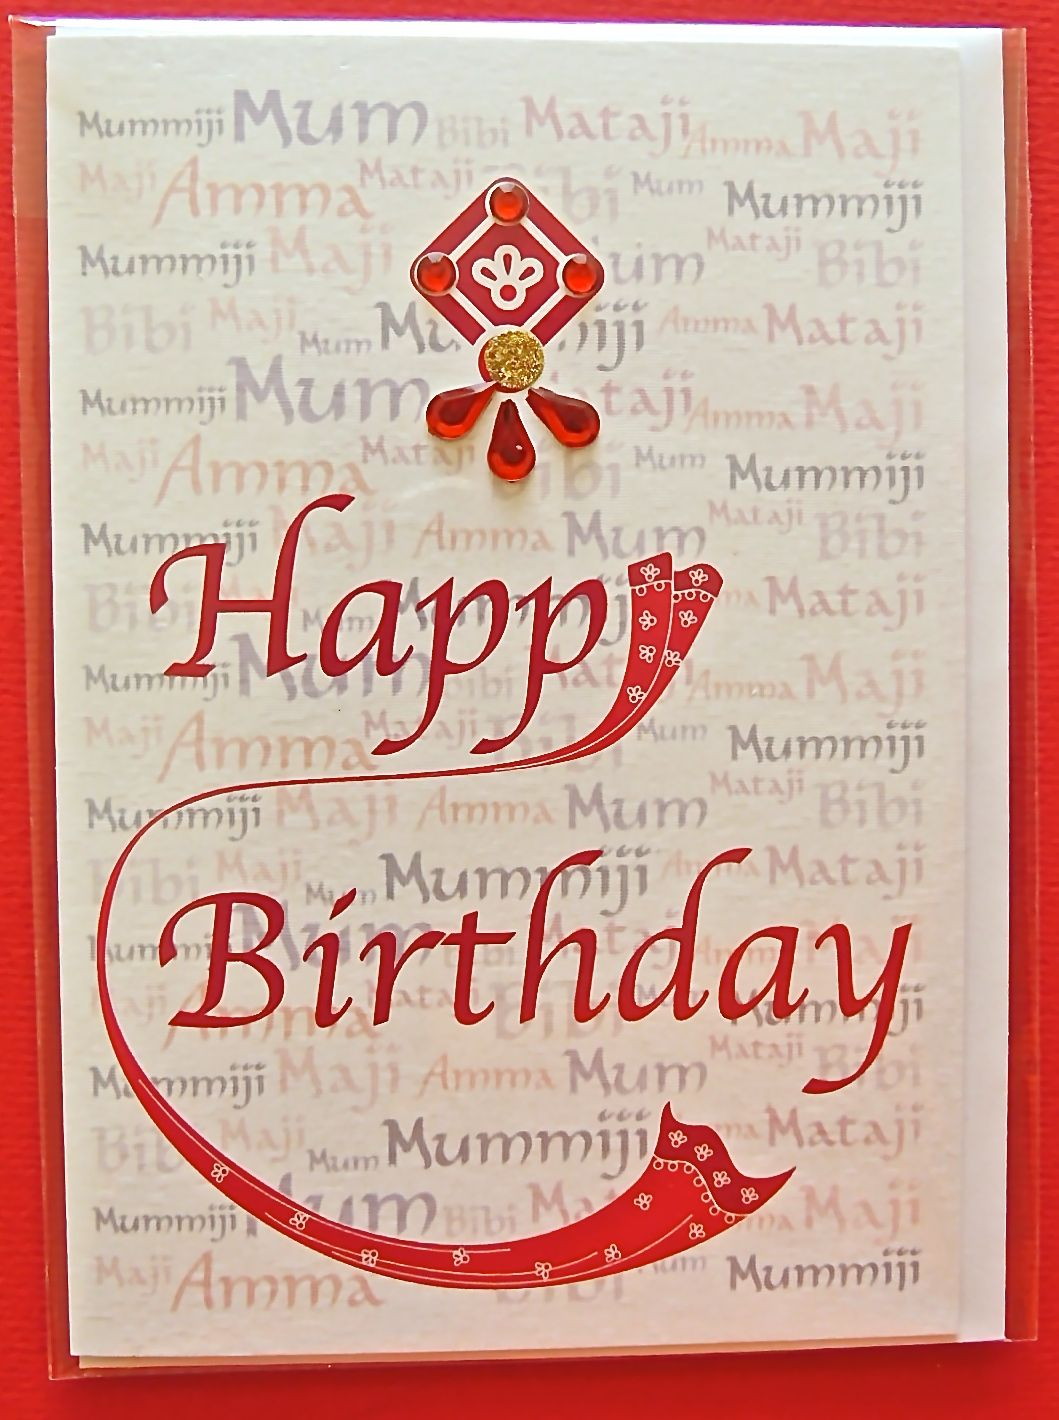 Birthday Card For Your Mum With Watermark Background With Names For